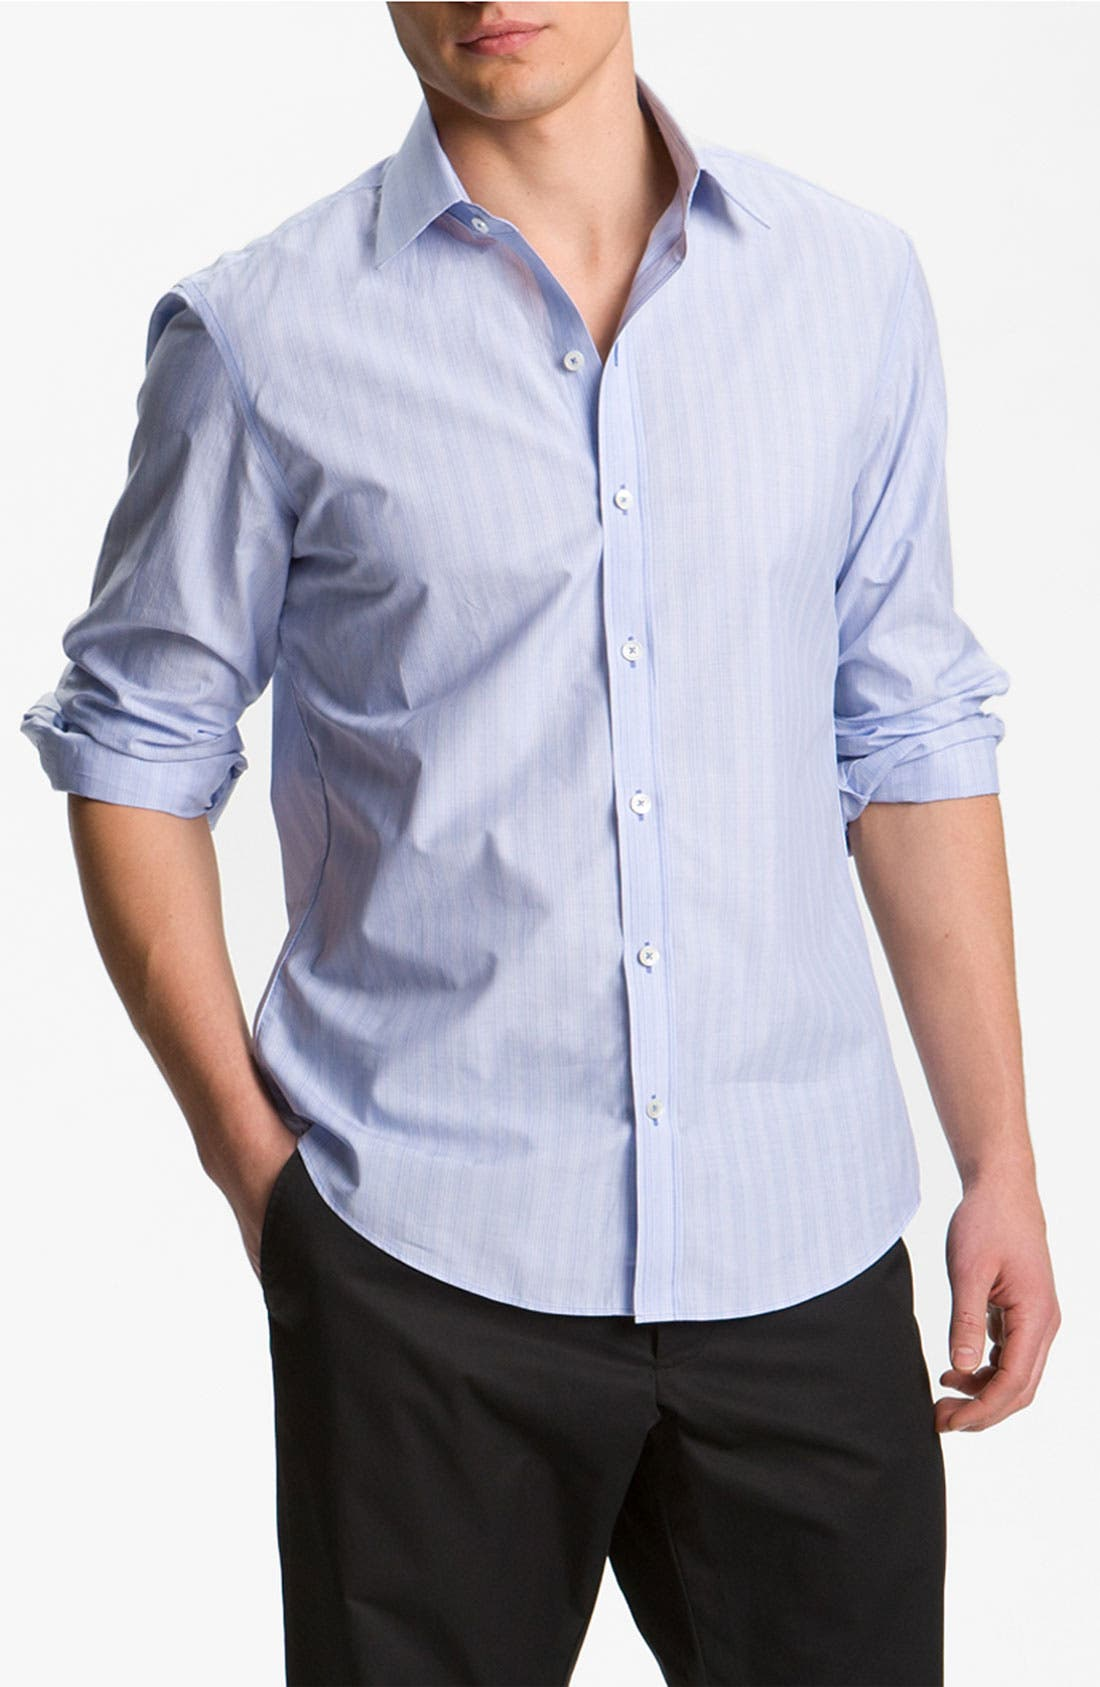 Alternate Image 1 Selected - Zachary Prell Slim Fit Sport Shirt